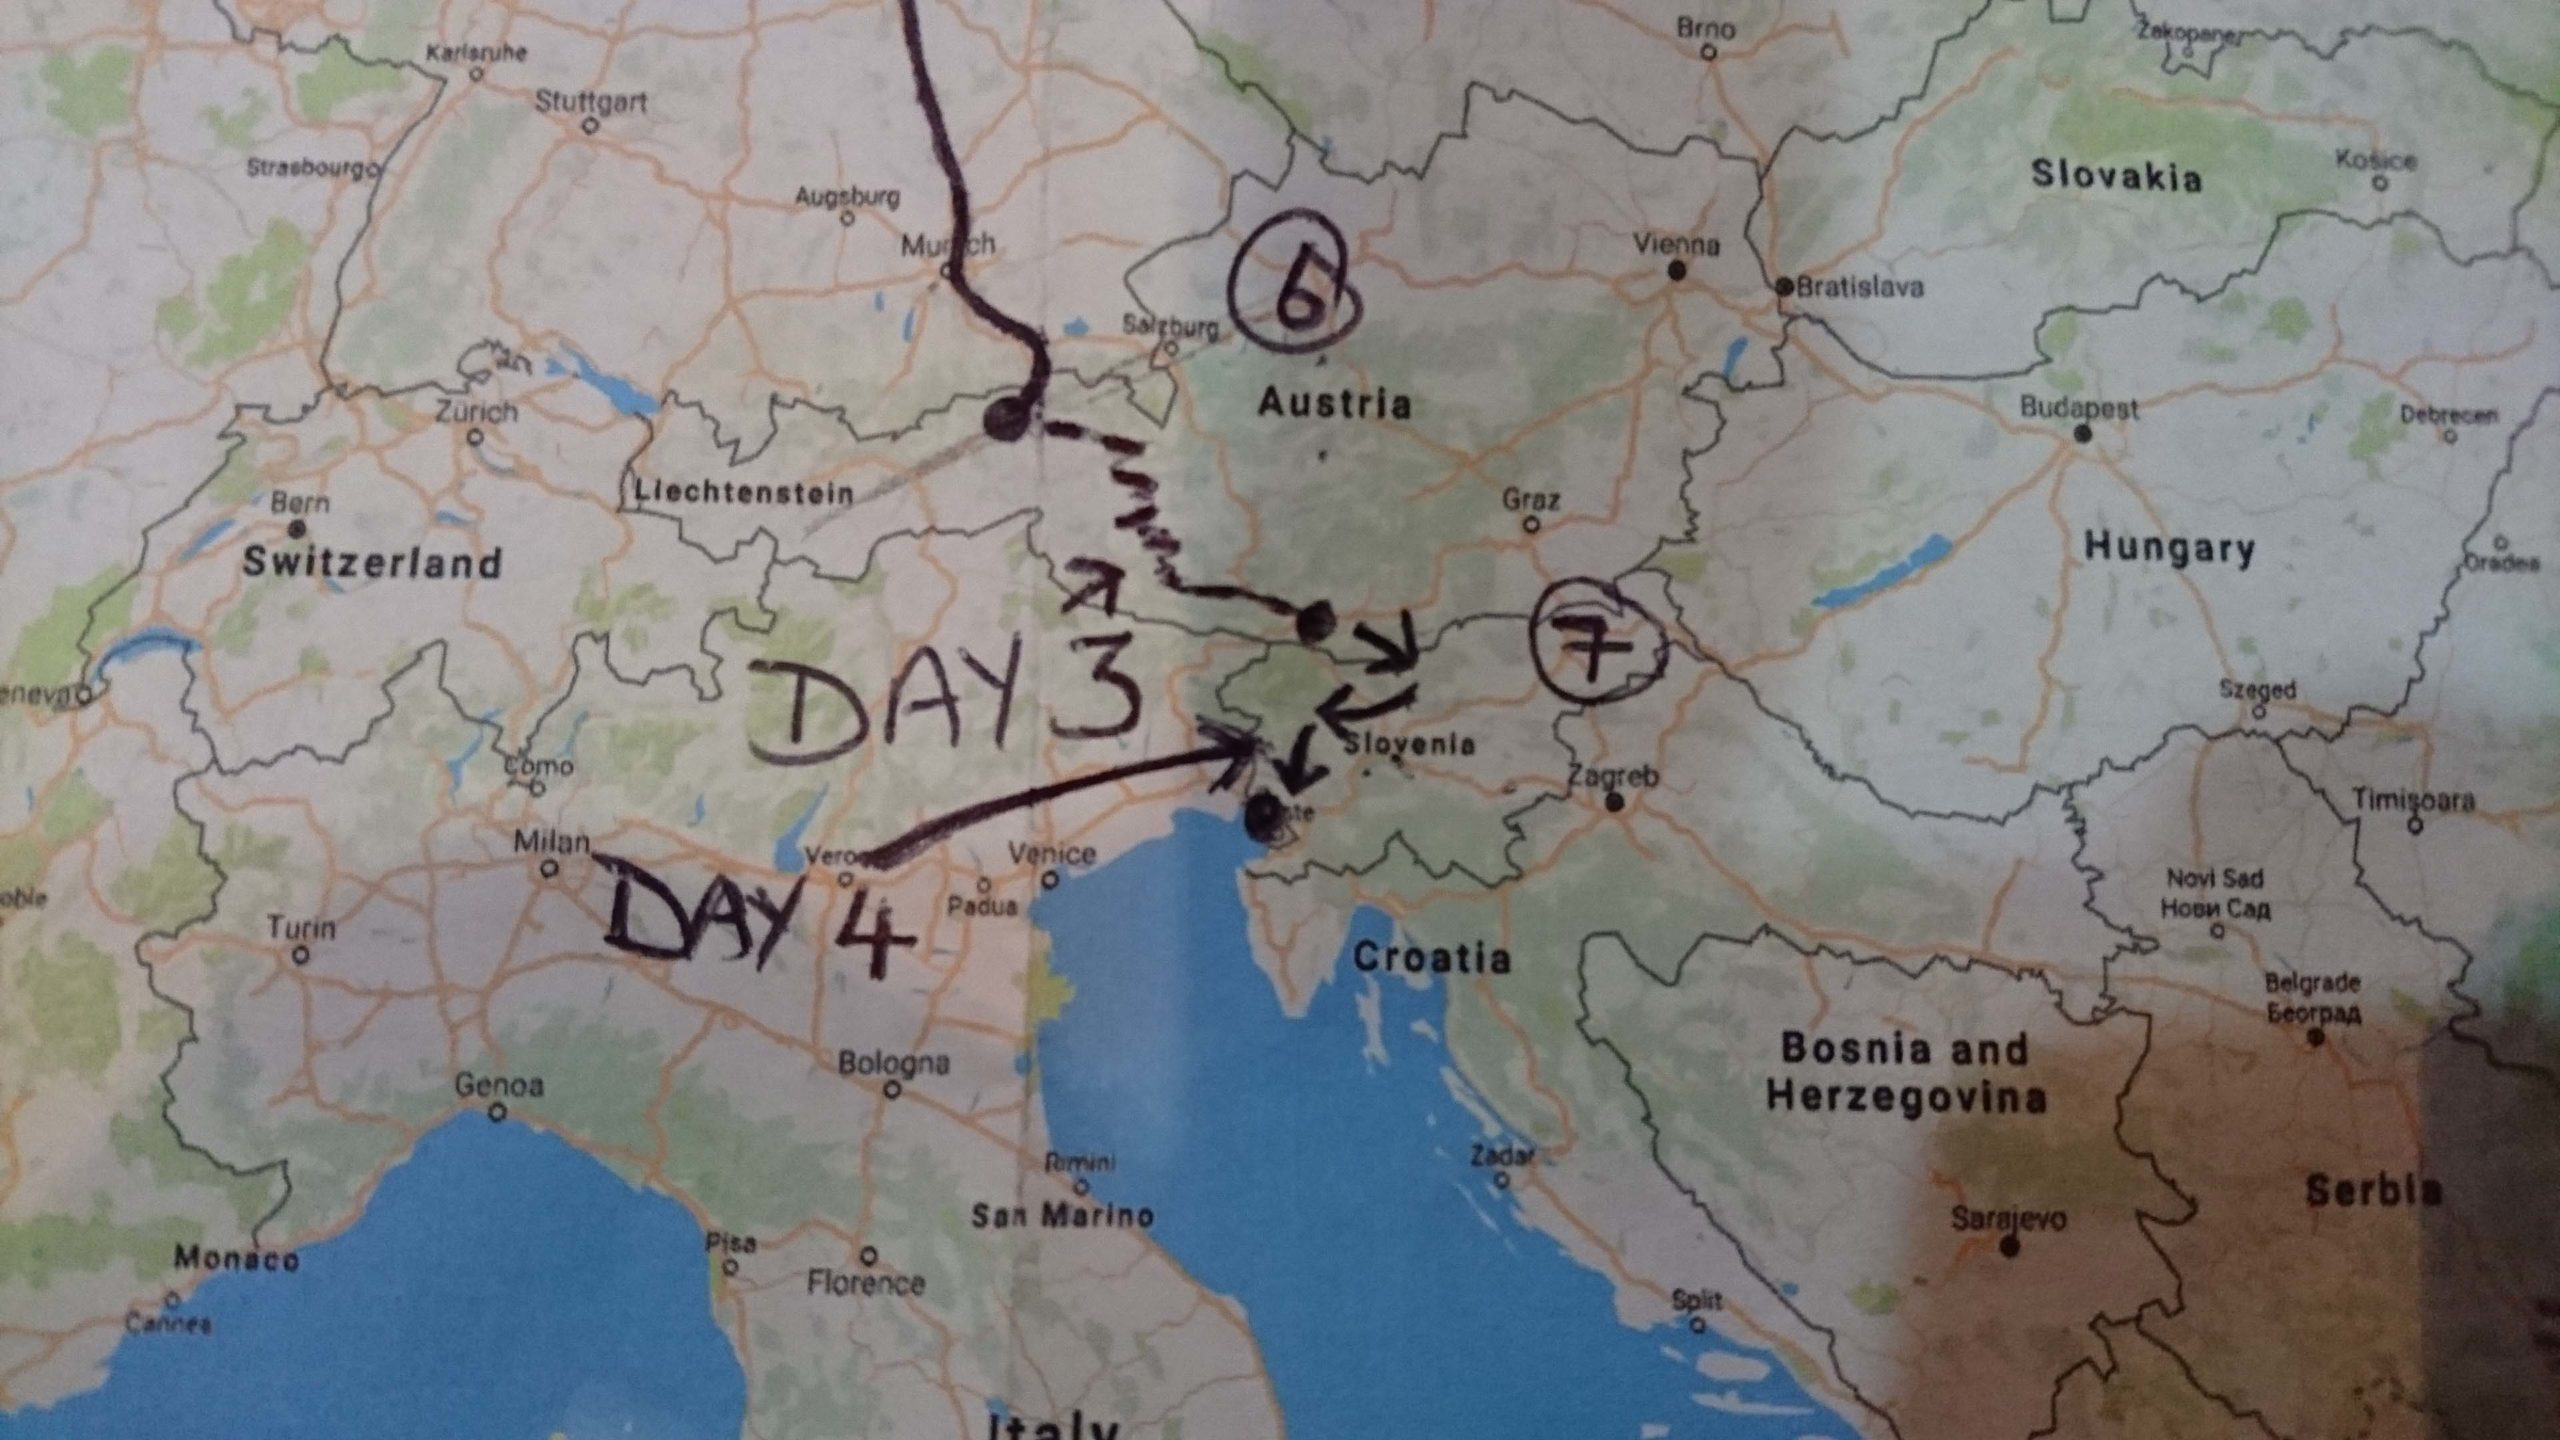 European motorcycle tour Slovenia – 20 Countries in 20 Days (Day 4)